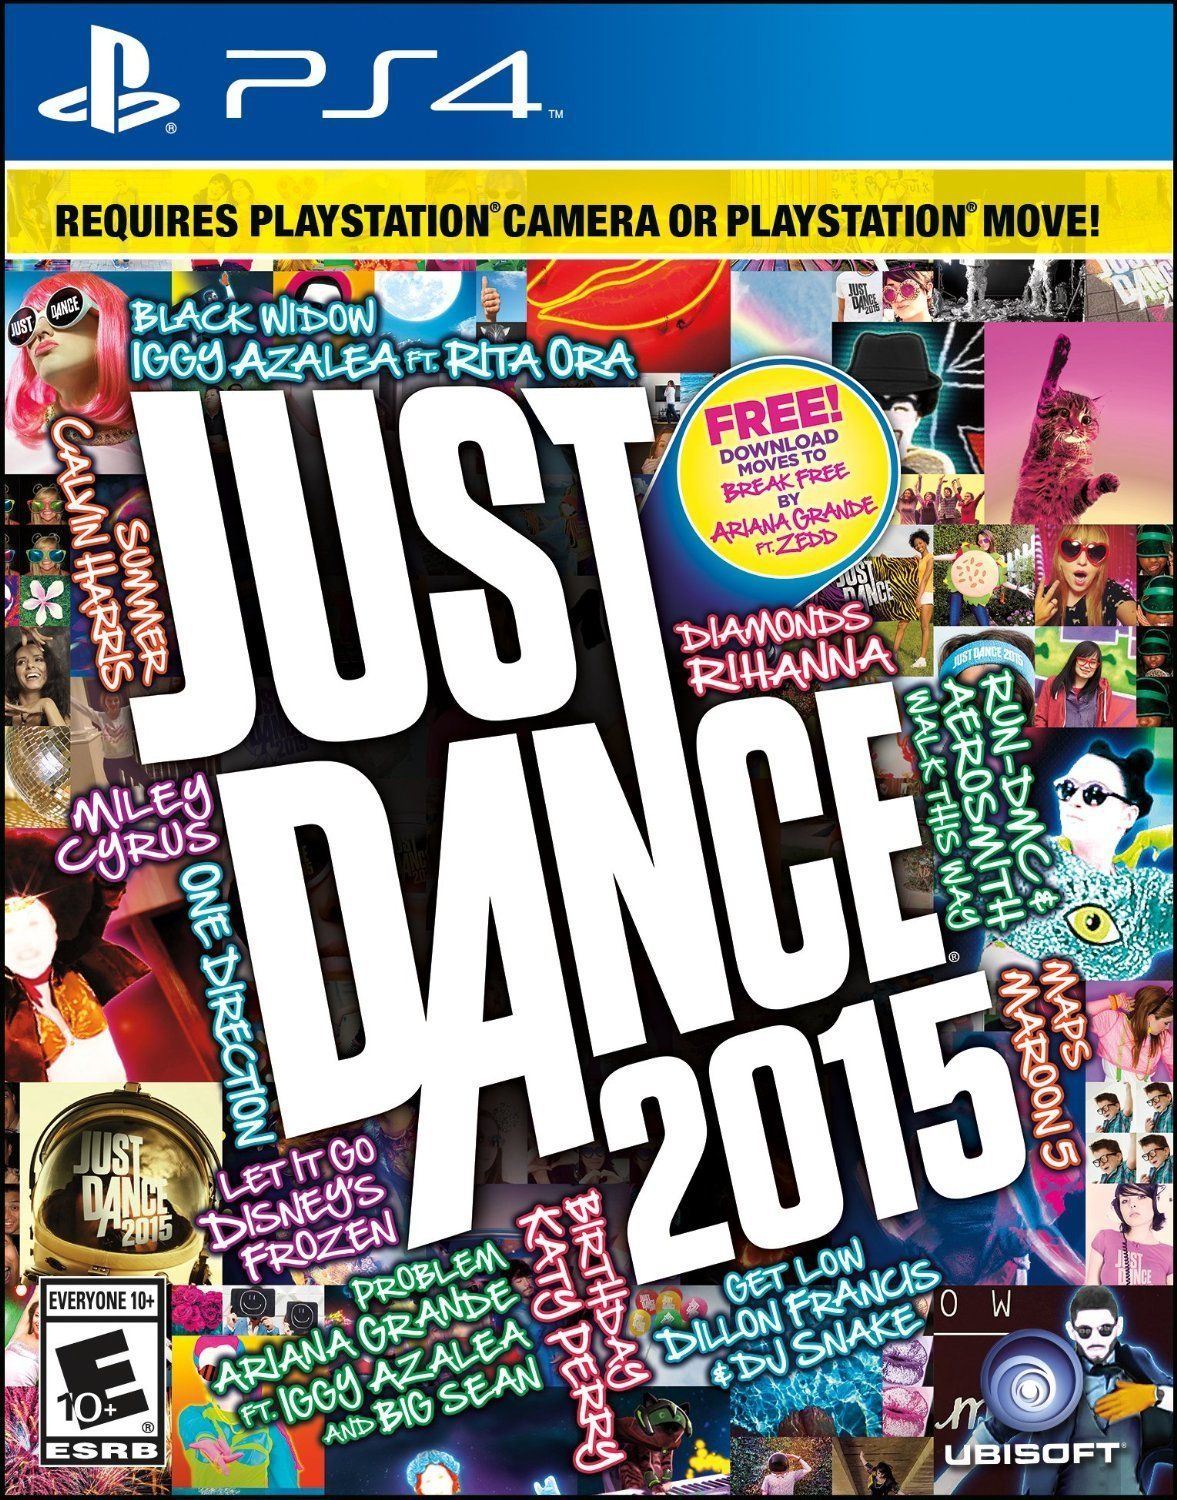 Just Dance 2015 Ps4 Wii Xbox One